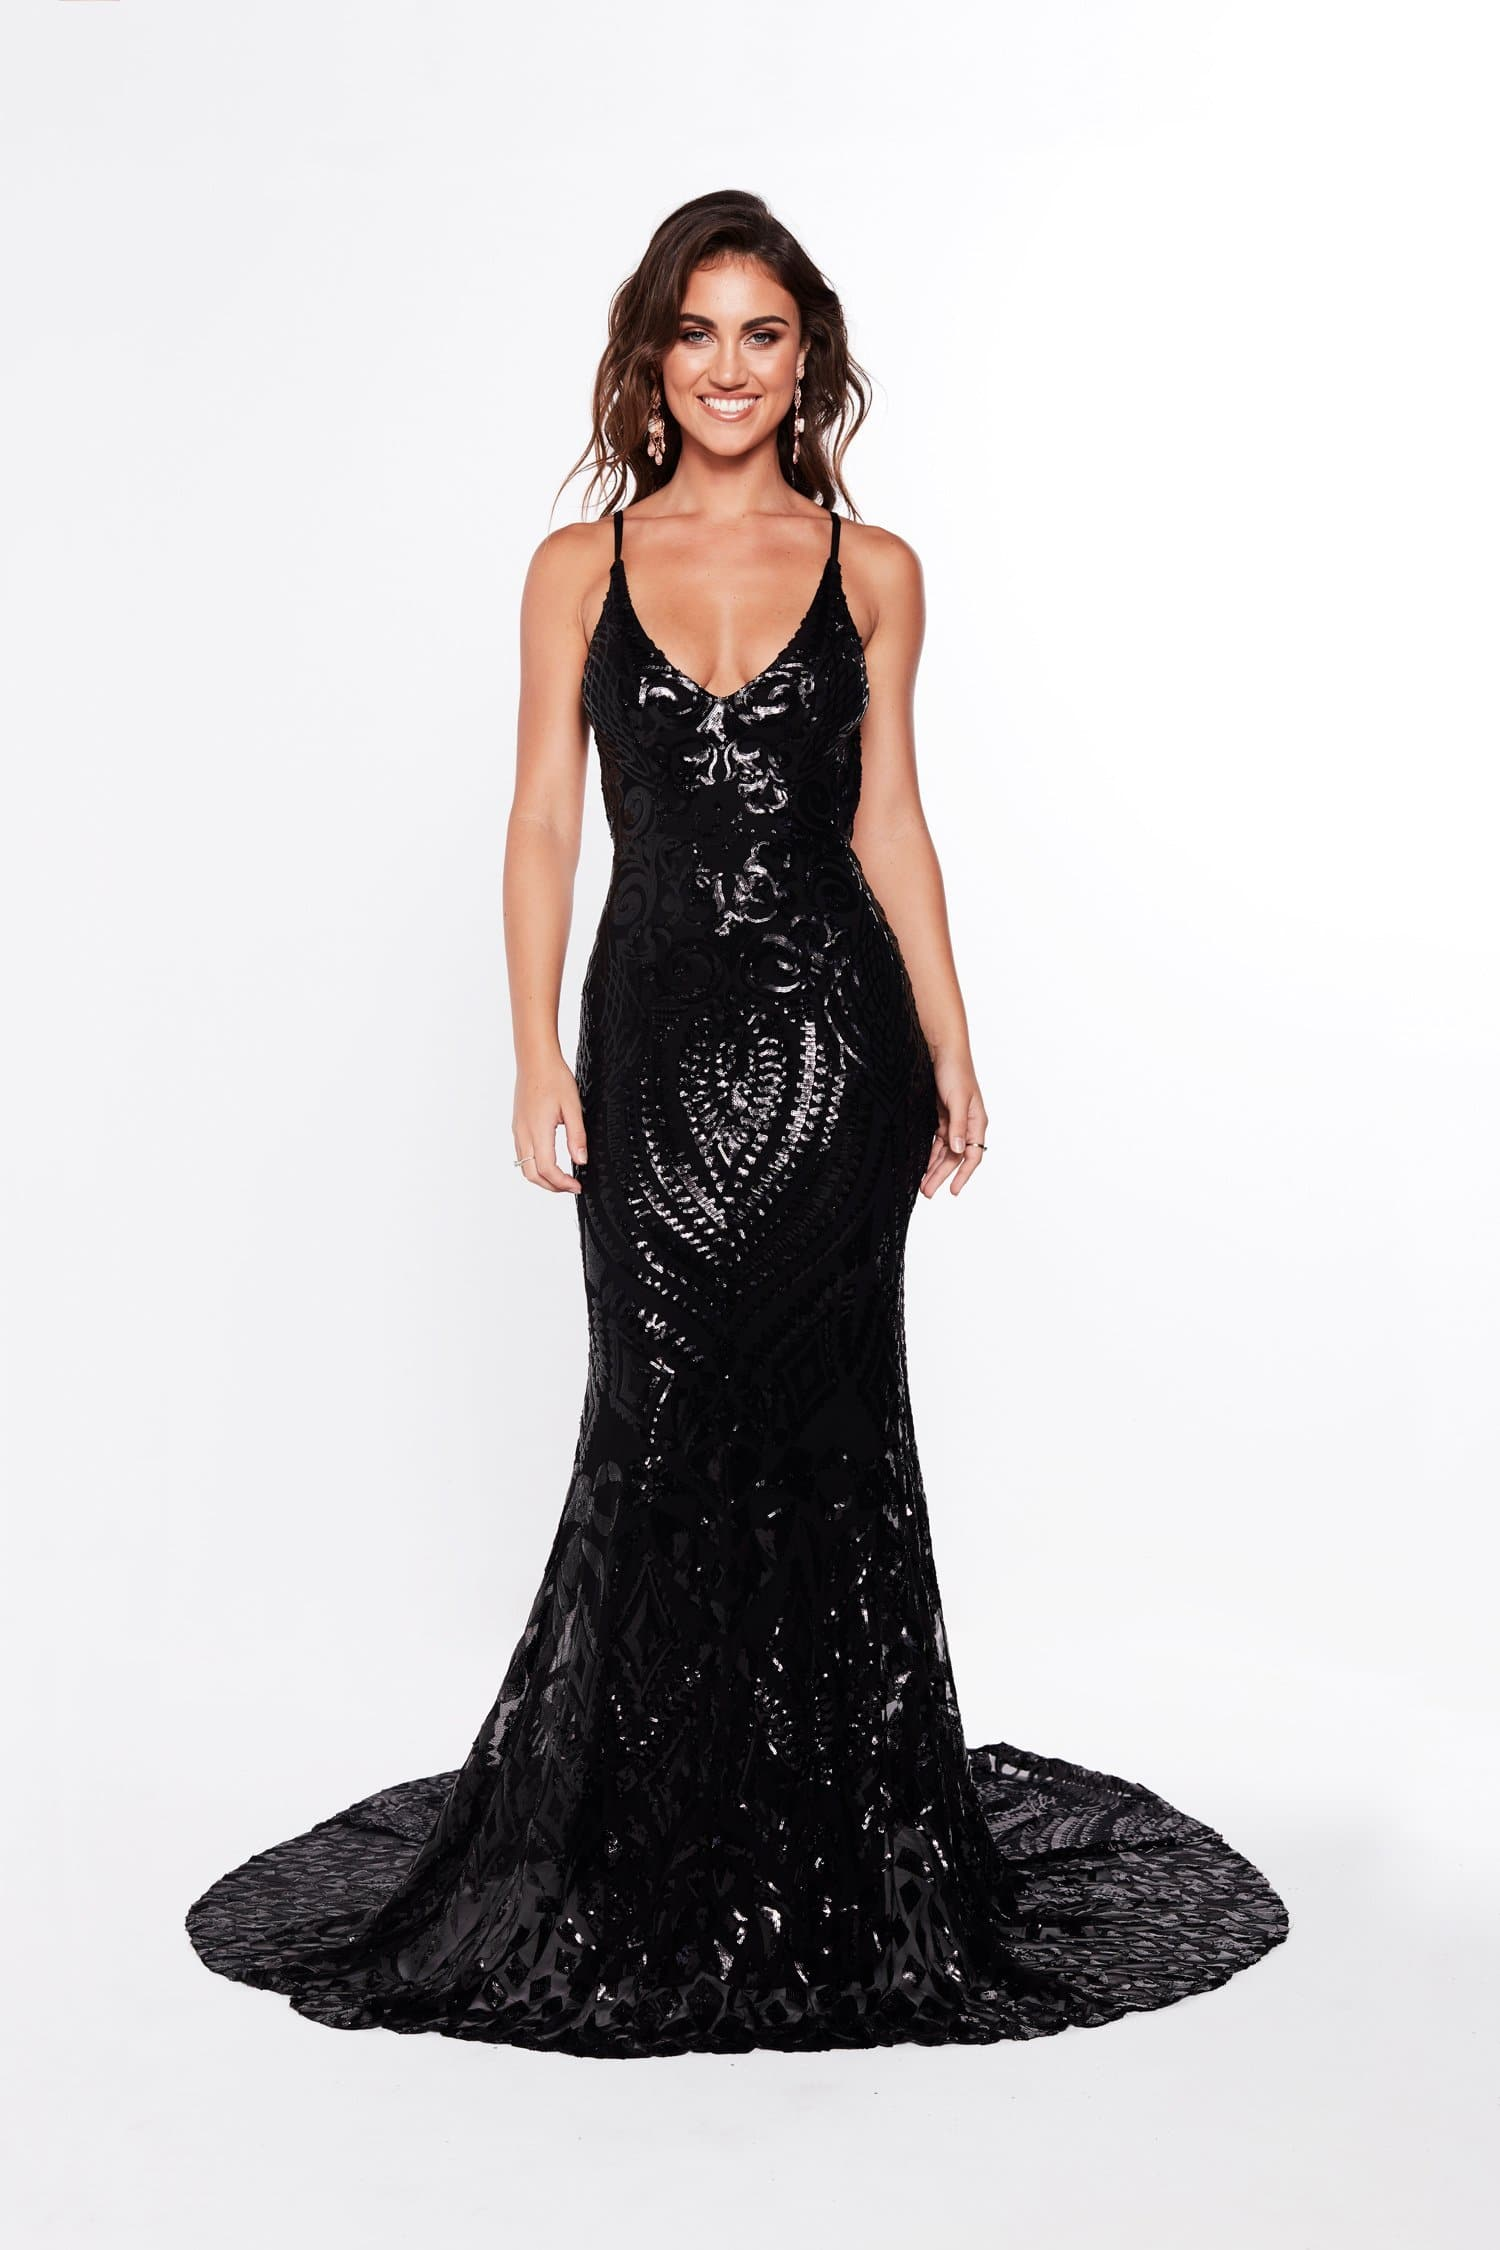 A&N Mariana - Black Sequin Gown with Low Back